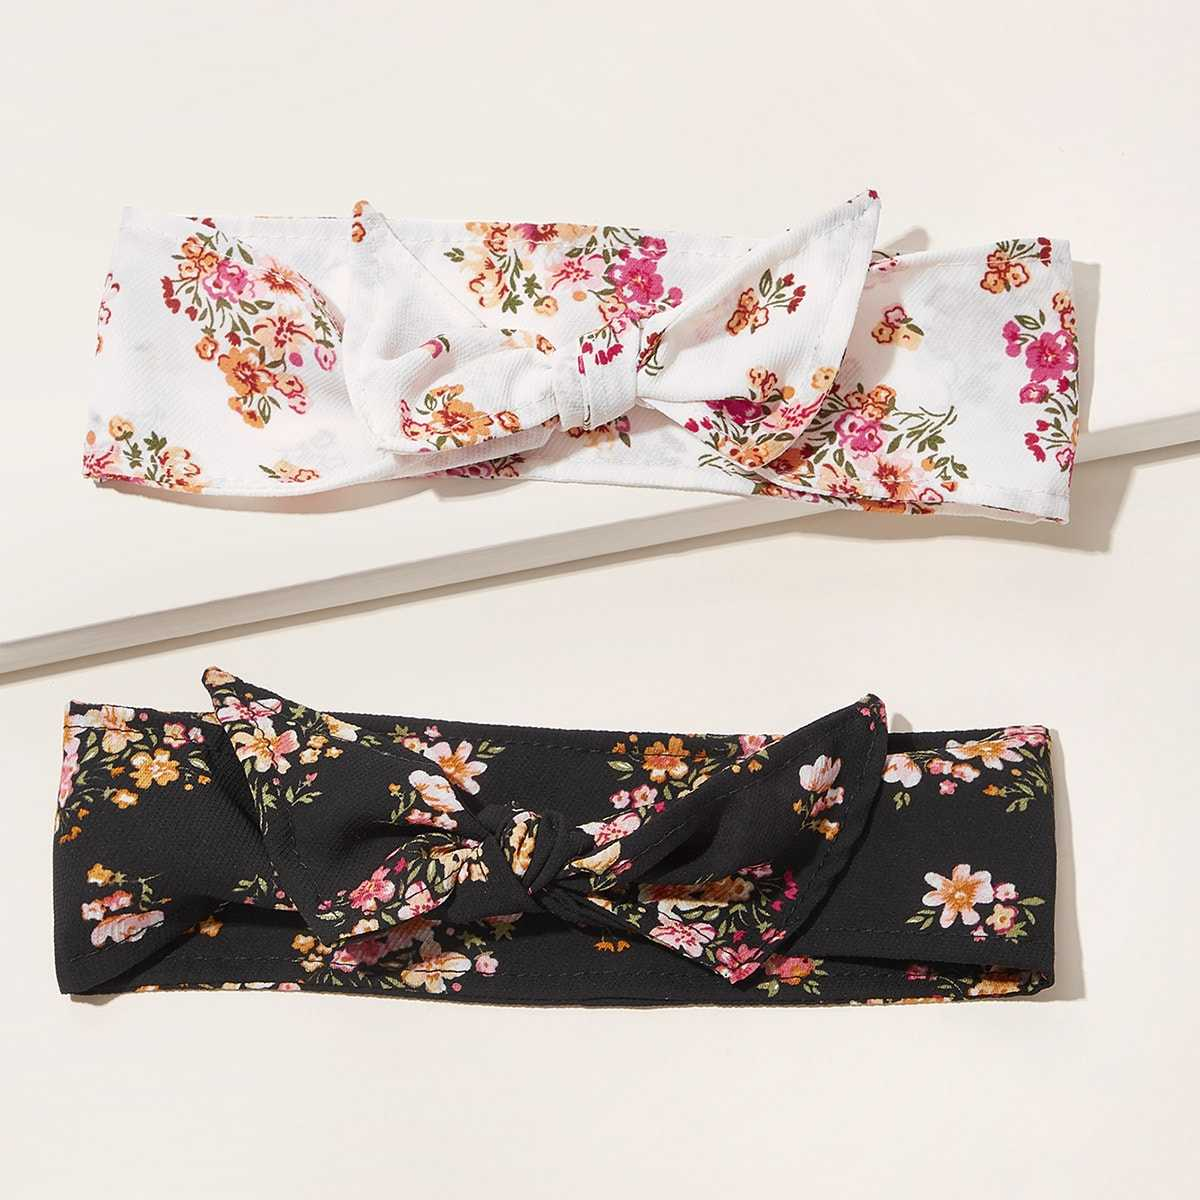 Ditsy Floral Pattern Headband 2pcs in Black and White by ROMWE on GOOFASH